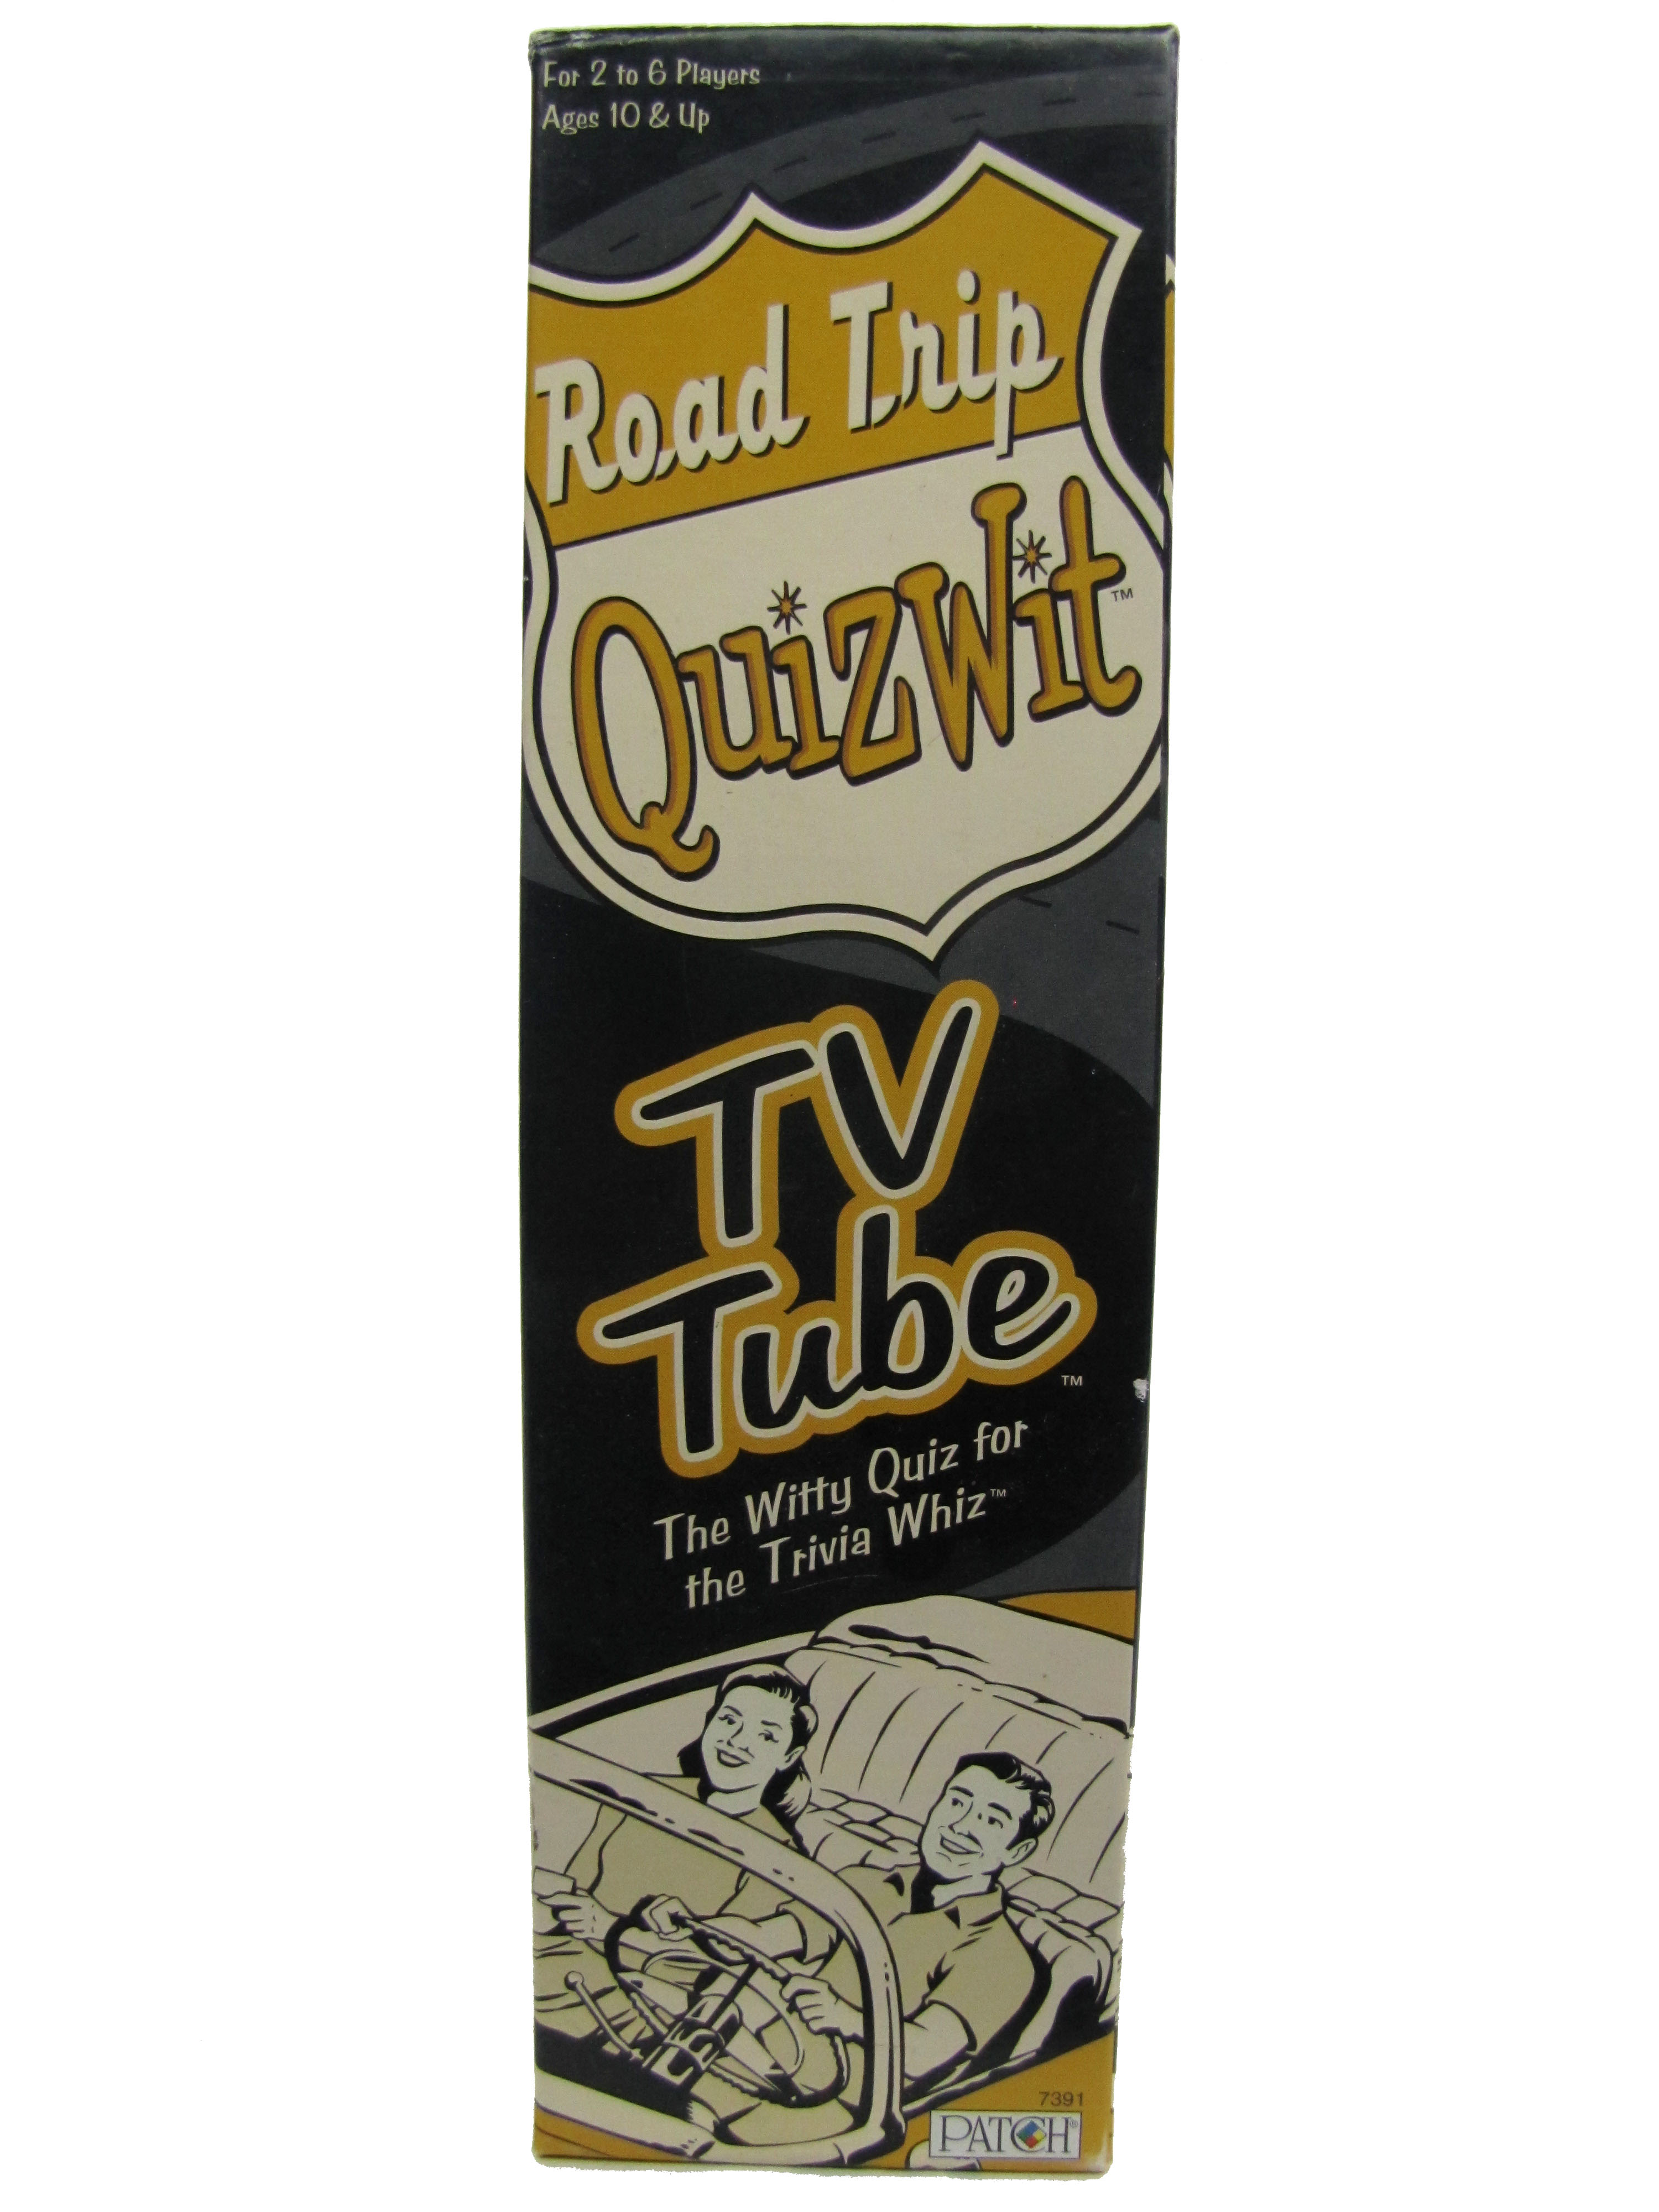 2005 Road Trip Quizwit TV Tube Board Game Complete